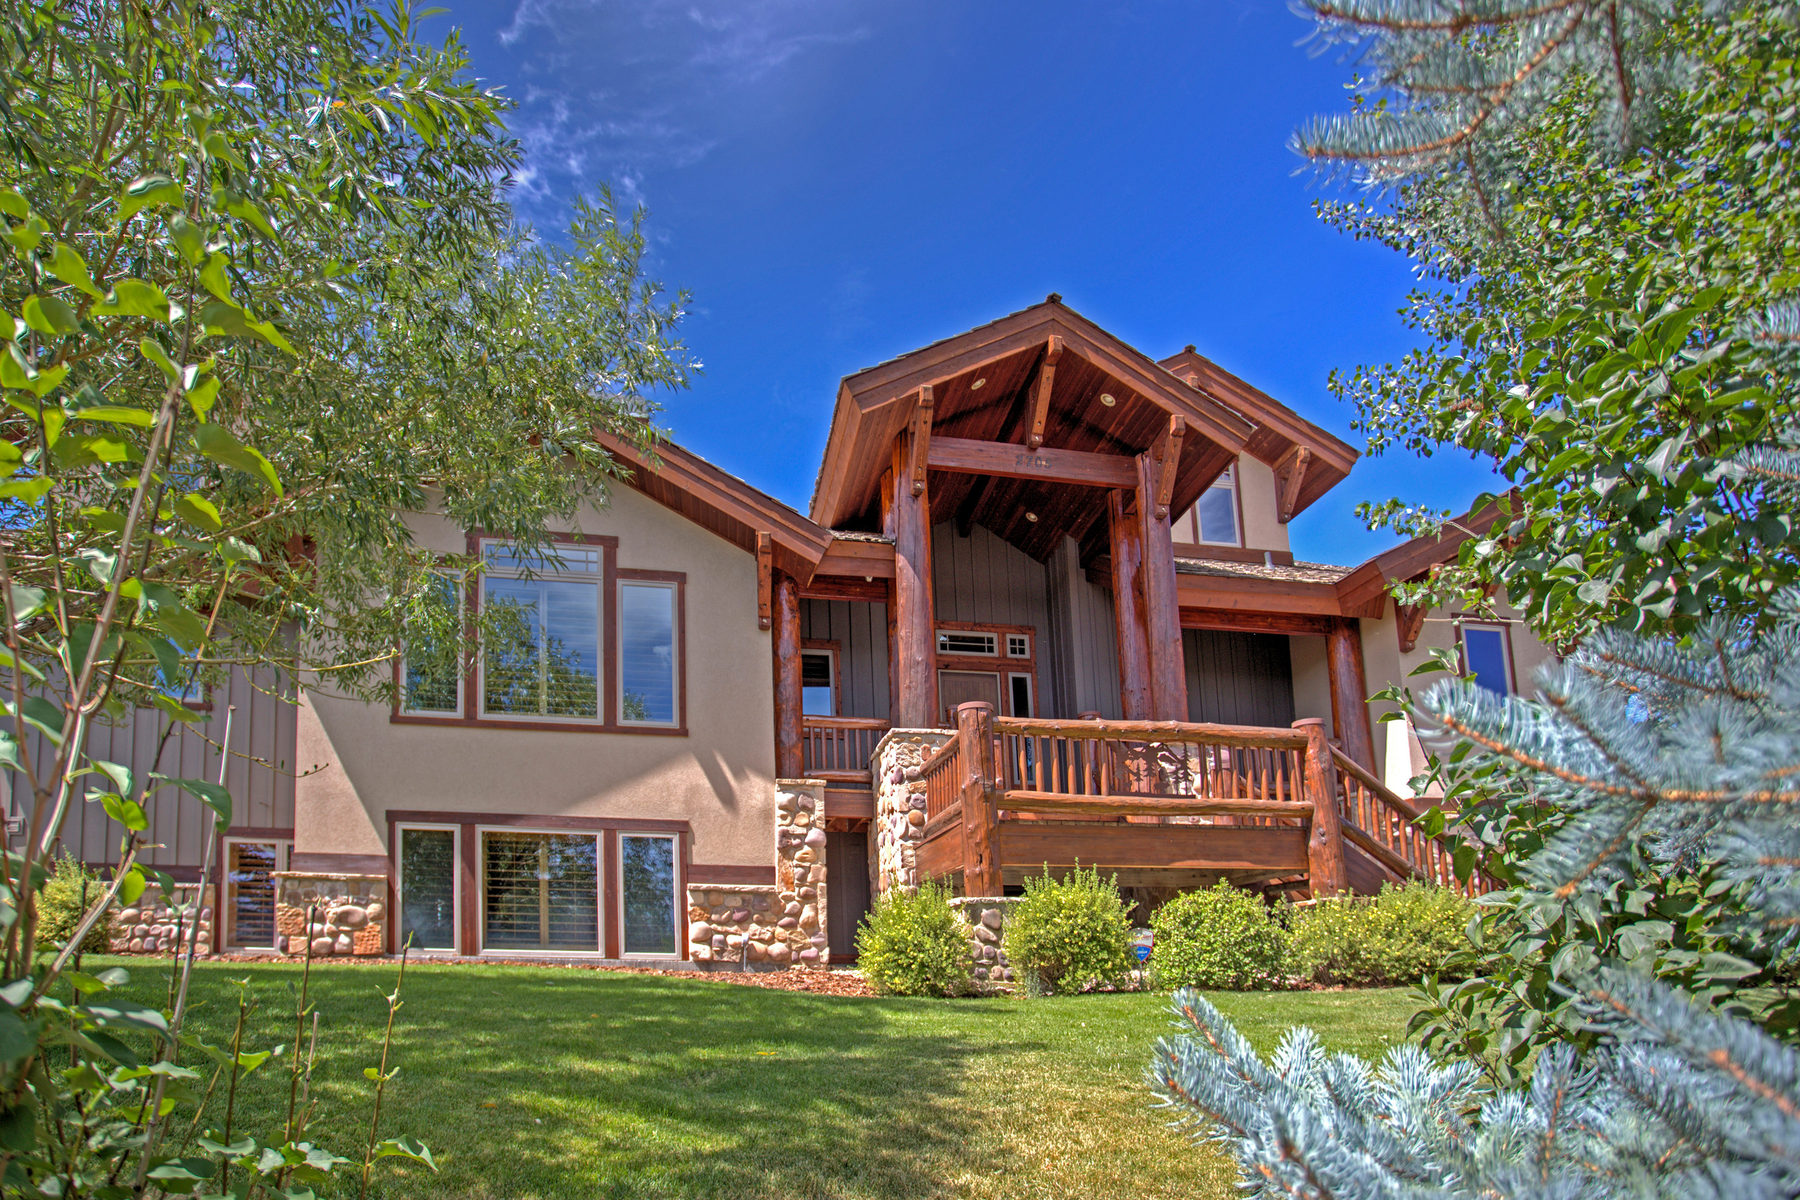 Single Family Home for Sale at One of the BEST Park Meadows Lots 2705 Silver Cloud Dr Park City, Utah 84060 United States